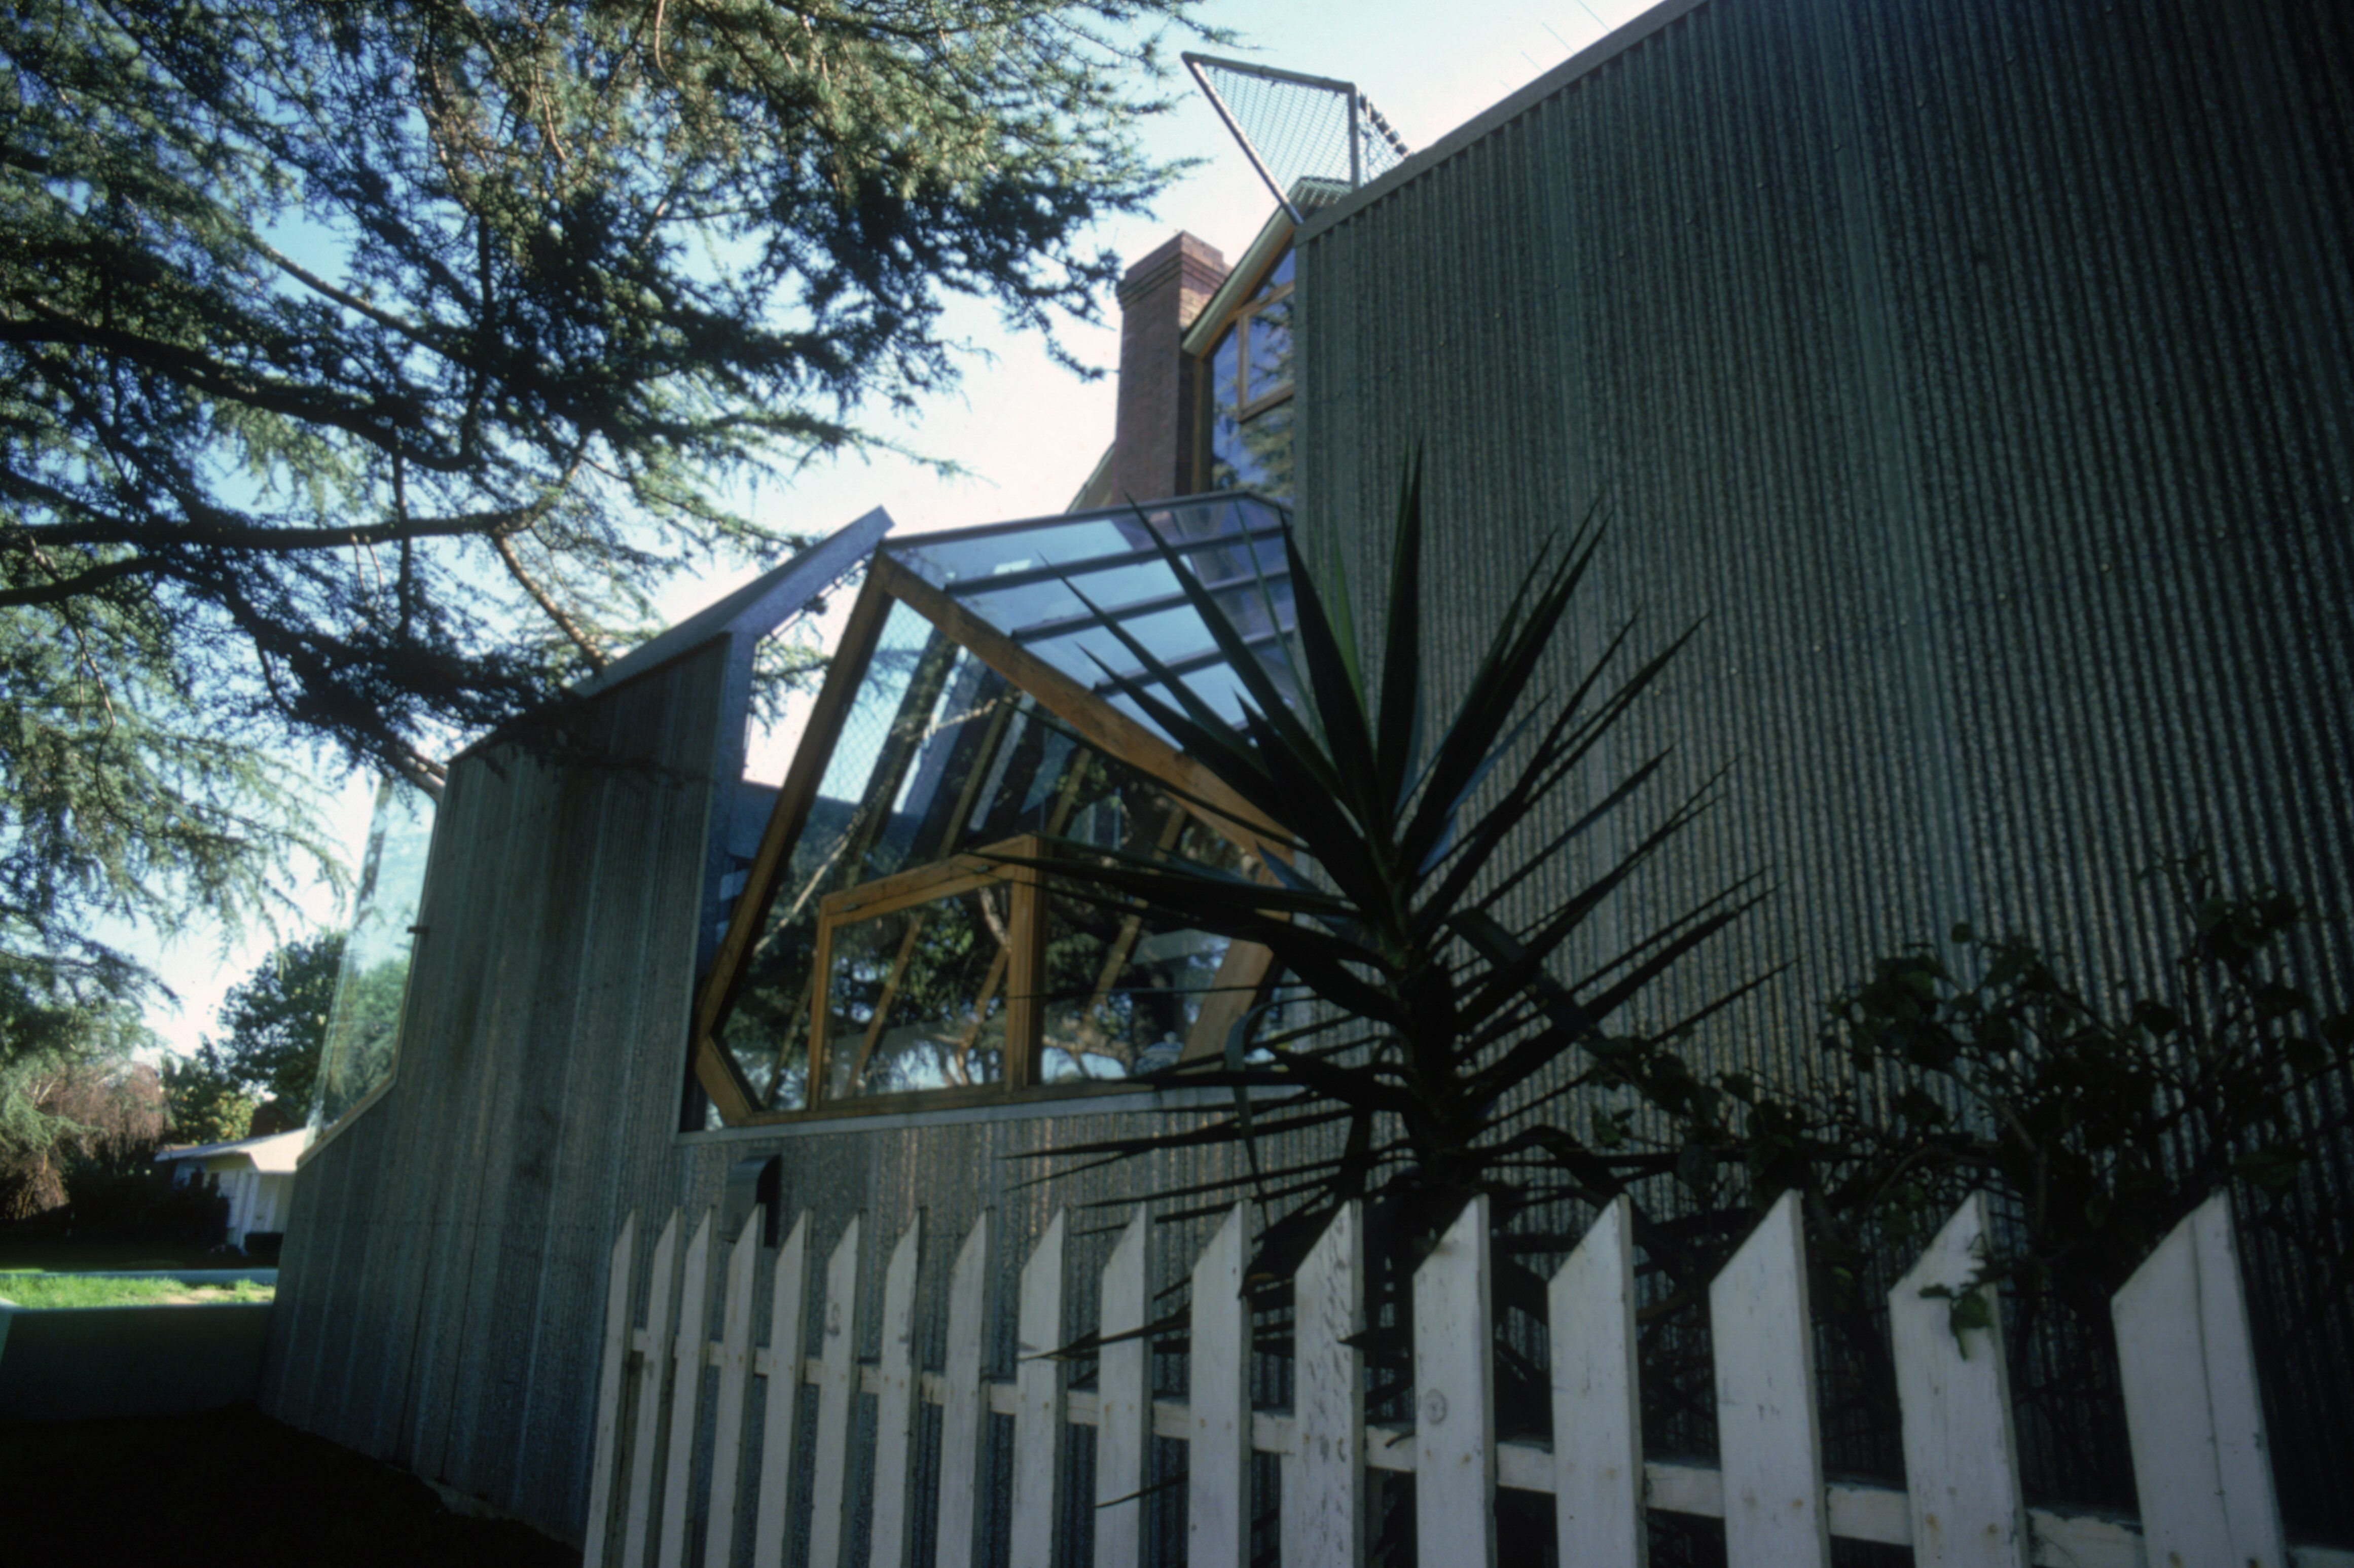 picket fence in front of corrigated metal panels and jagged window skylights